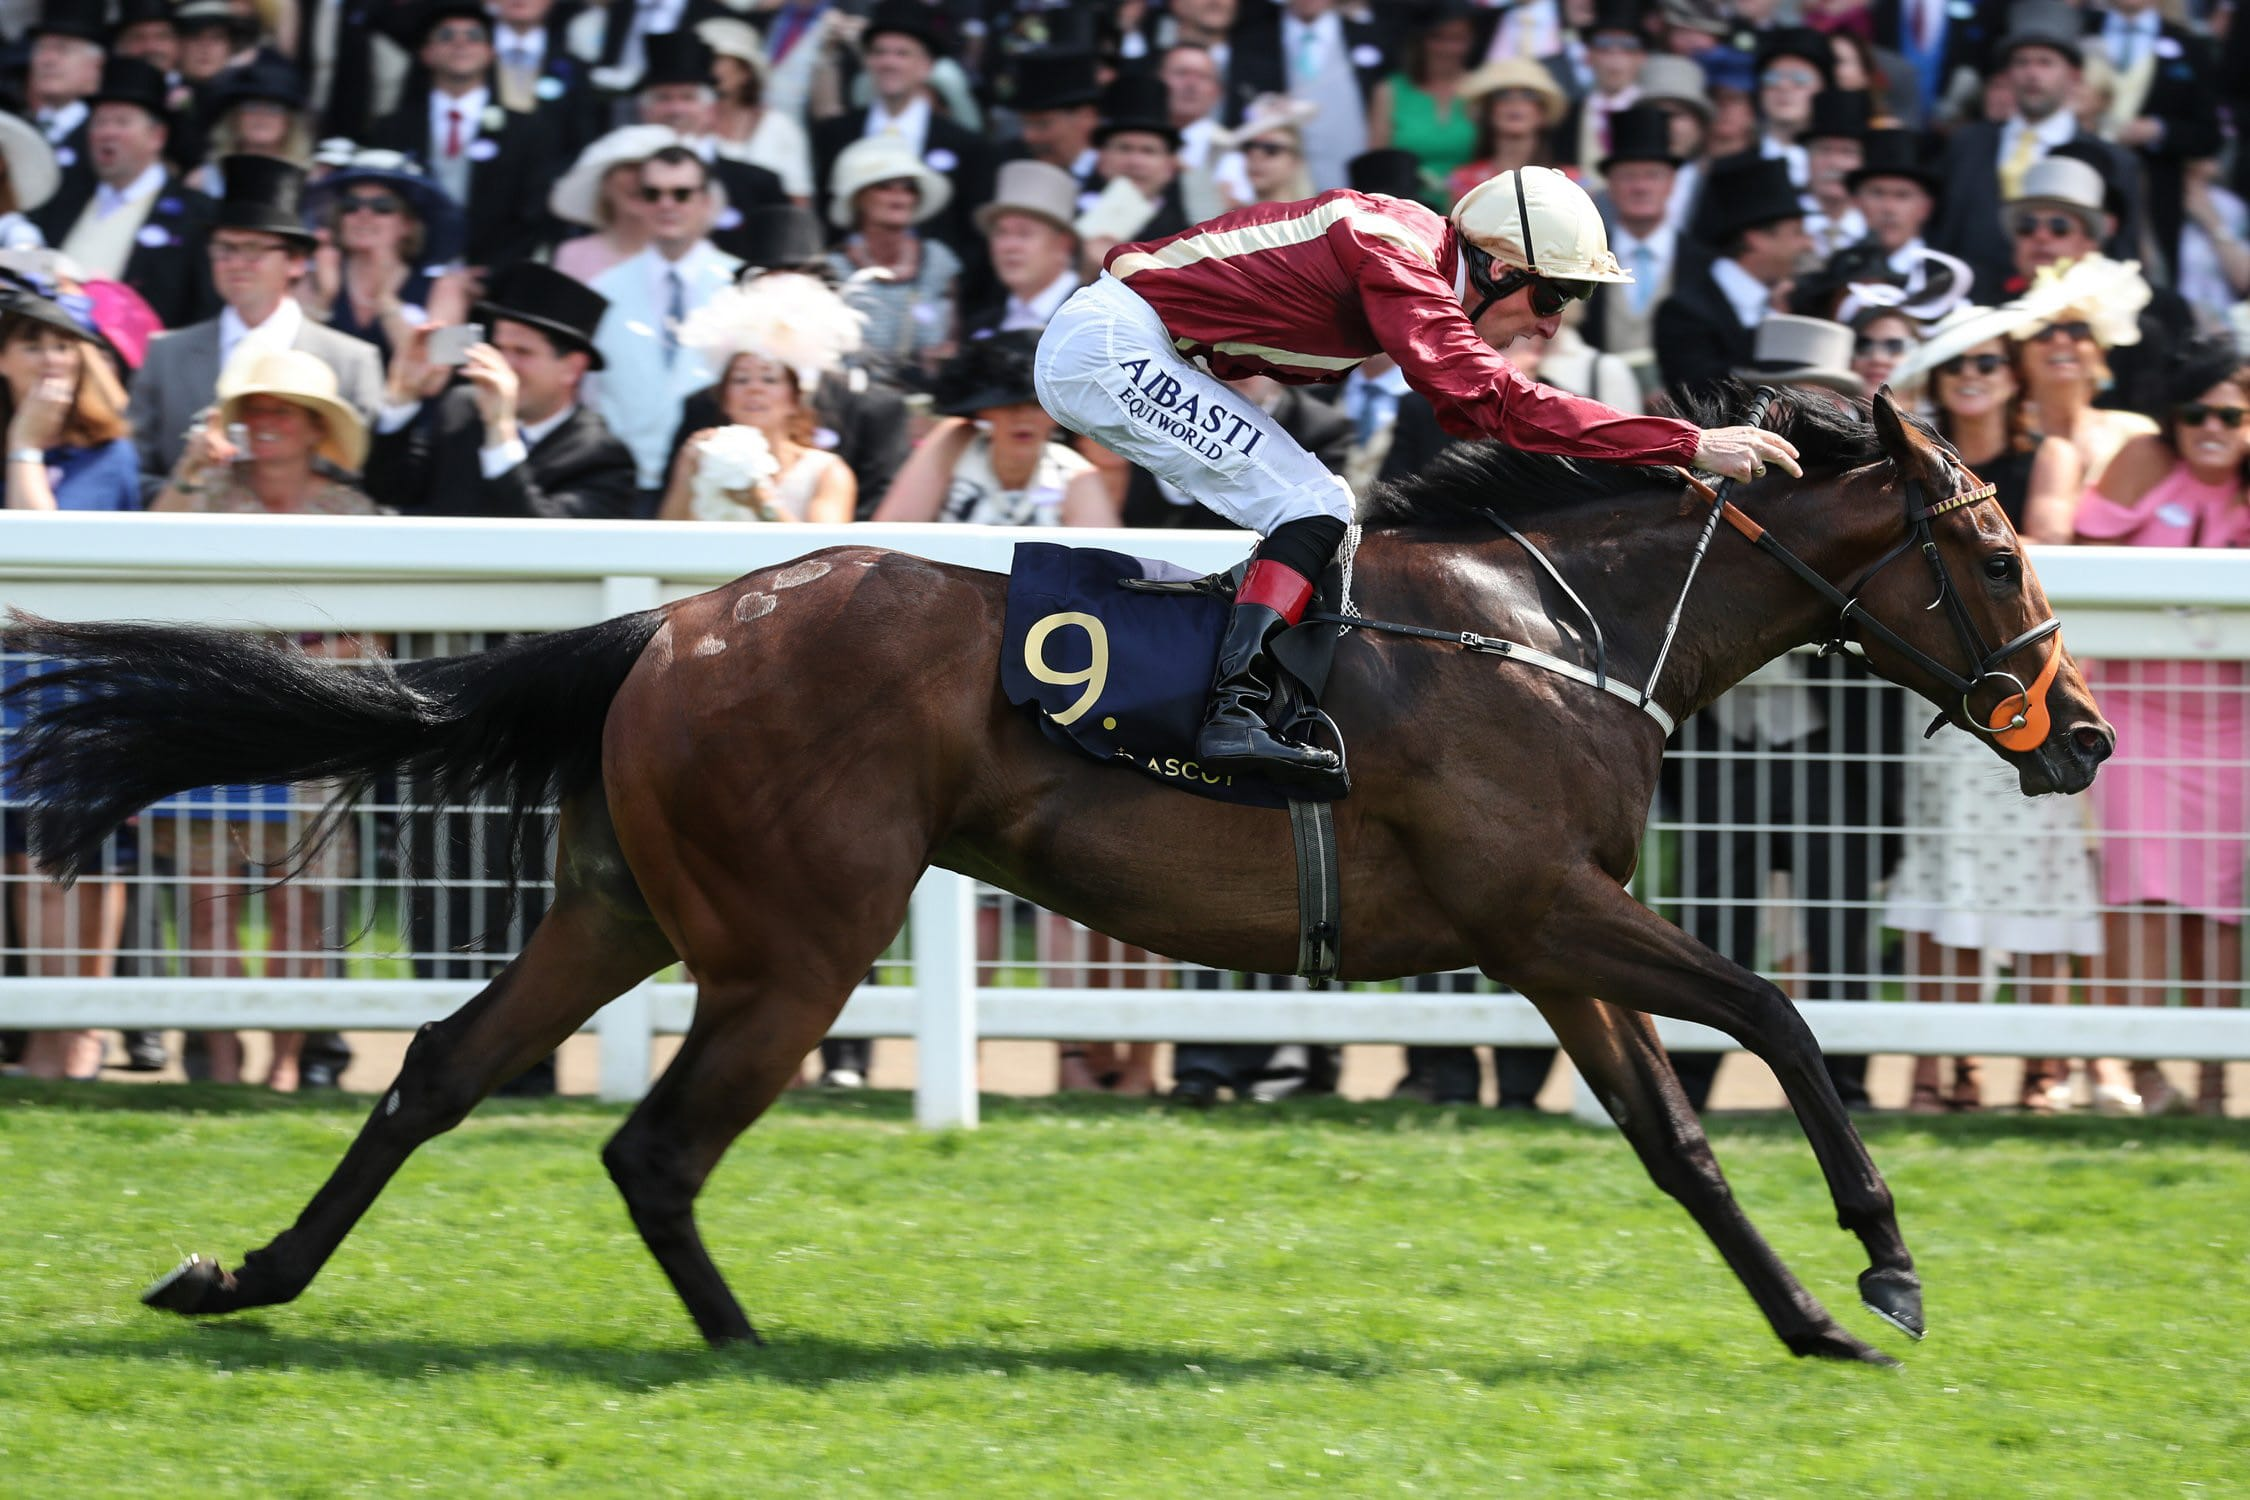 Adam Kirby steers Heartache to success at Royal Ascot